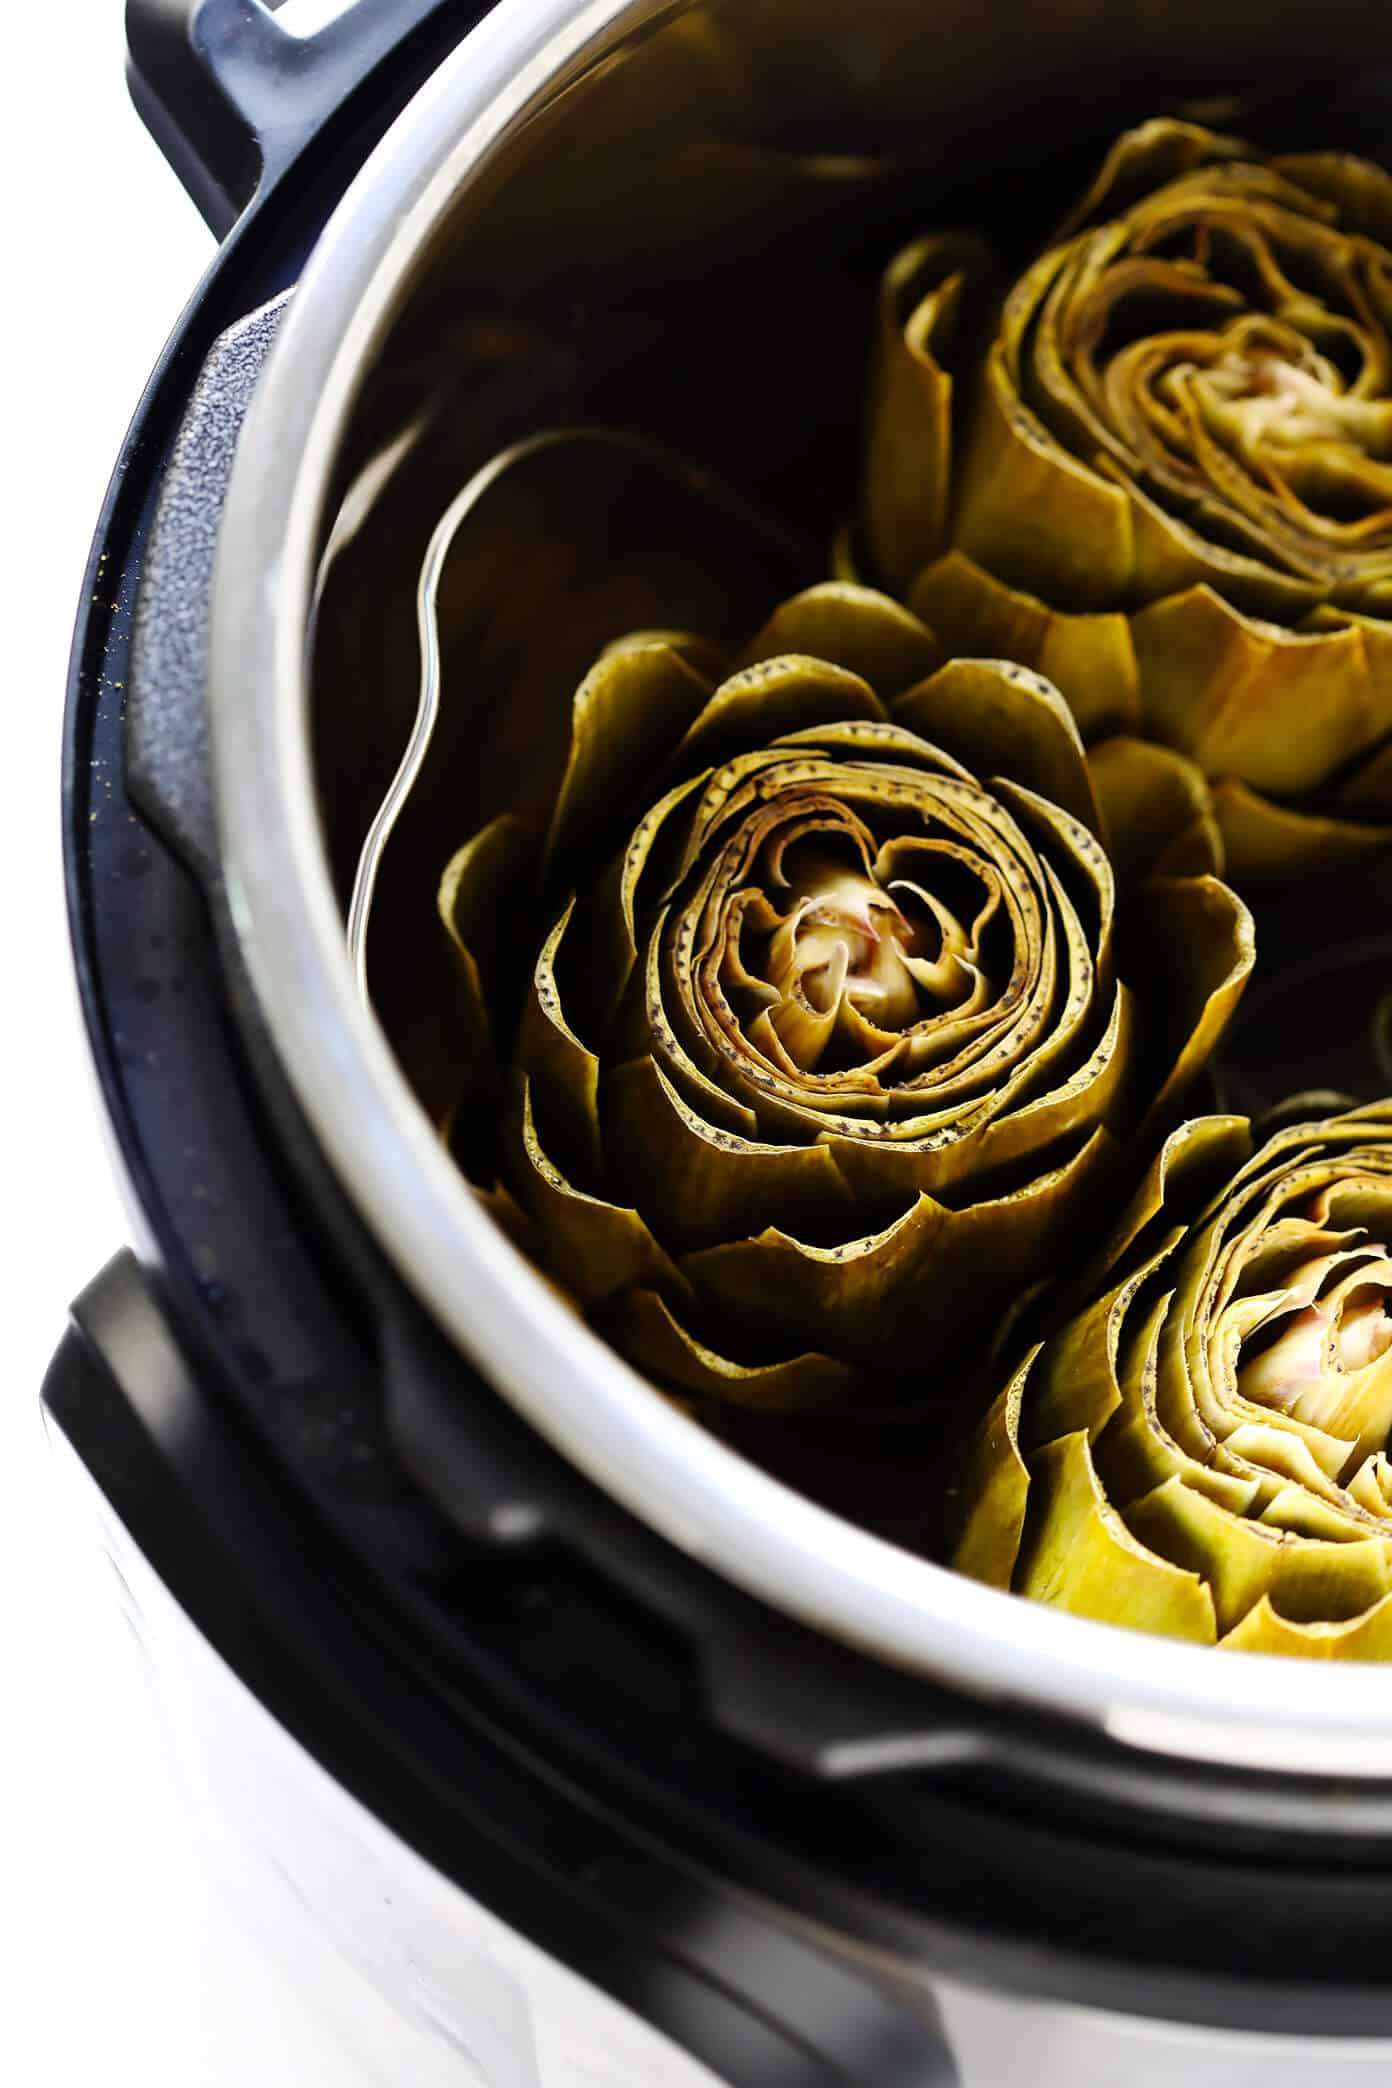 How to cook artichokes in your Instant Pot. This post has so many ways for newbies to get started with their Instant Pots! #InstantPotrRecipes